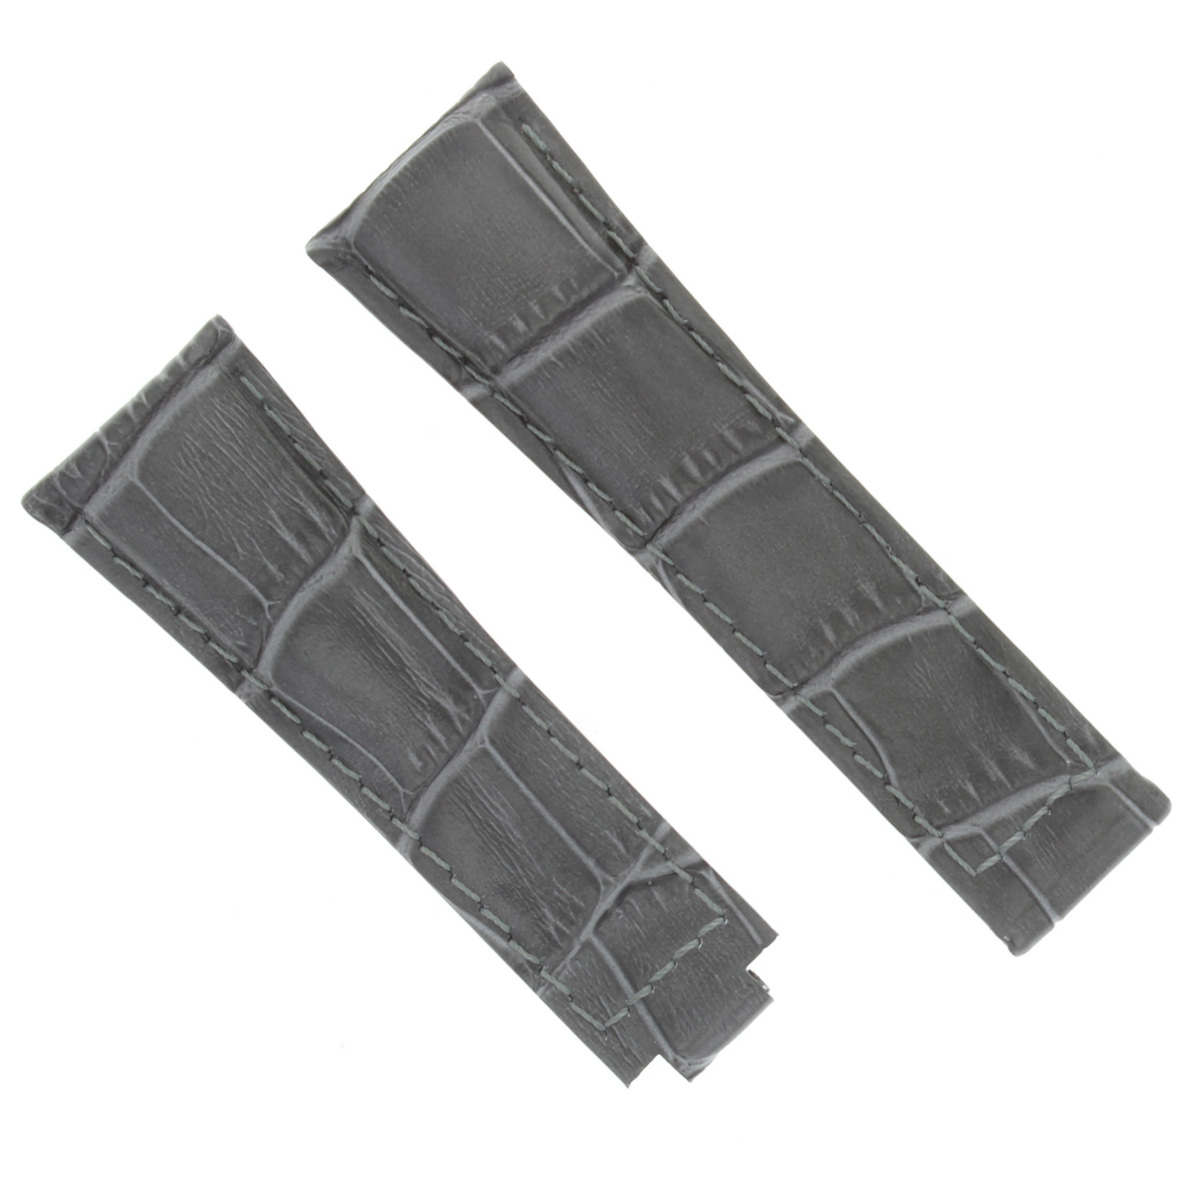 20MM LEATHER WATCH STRAP BAND FOR ROLEX DAYTONA 16518 16519 16520 GREY SHORT